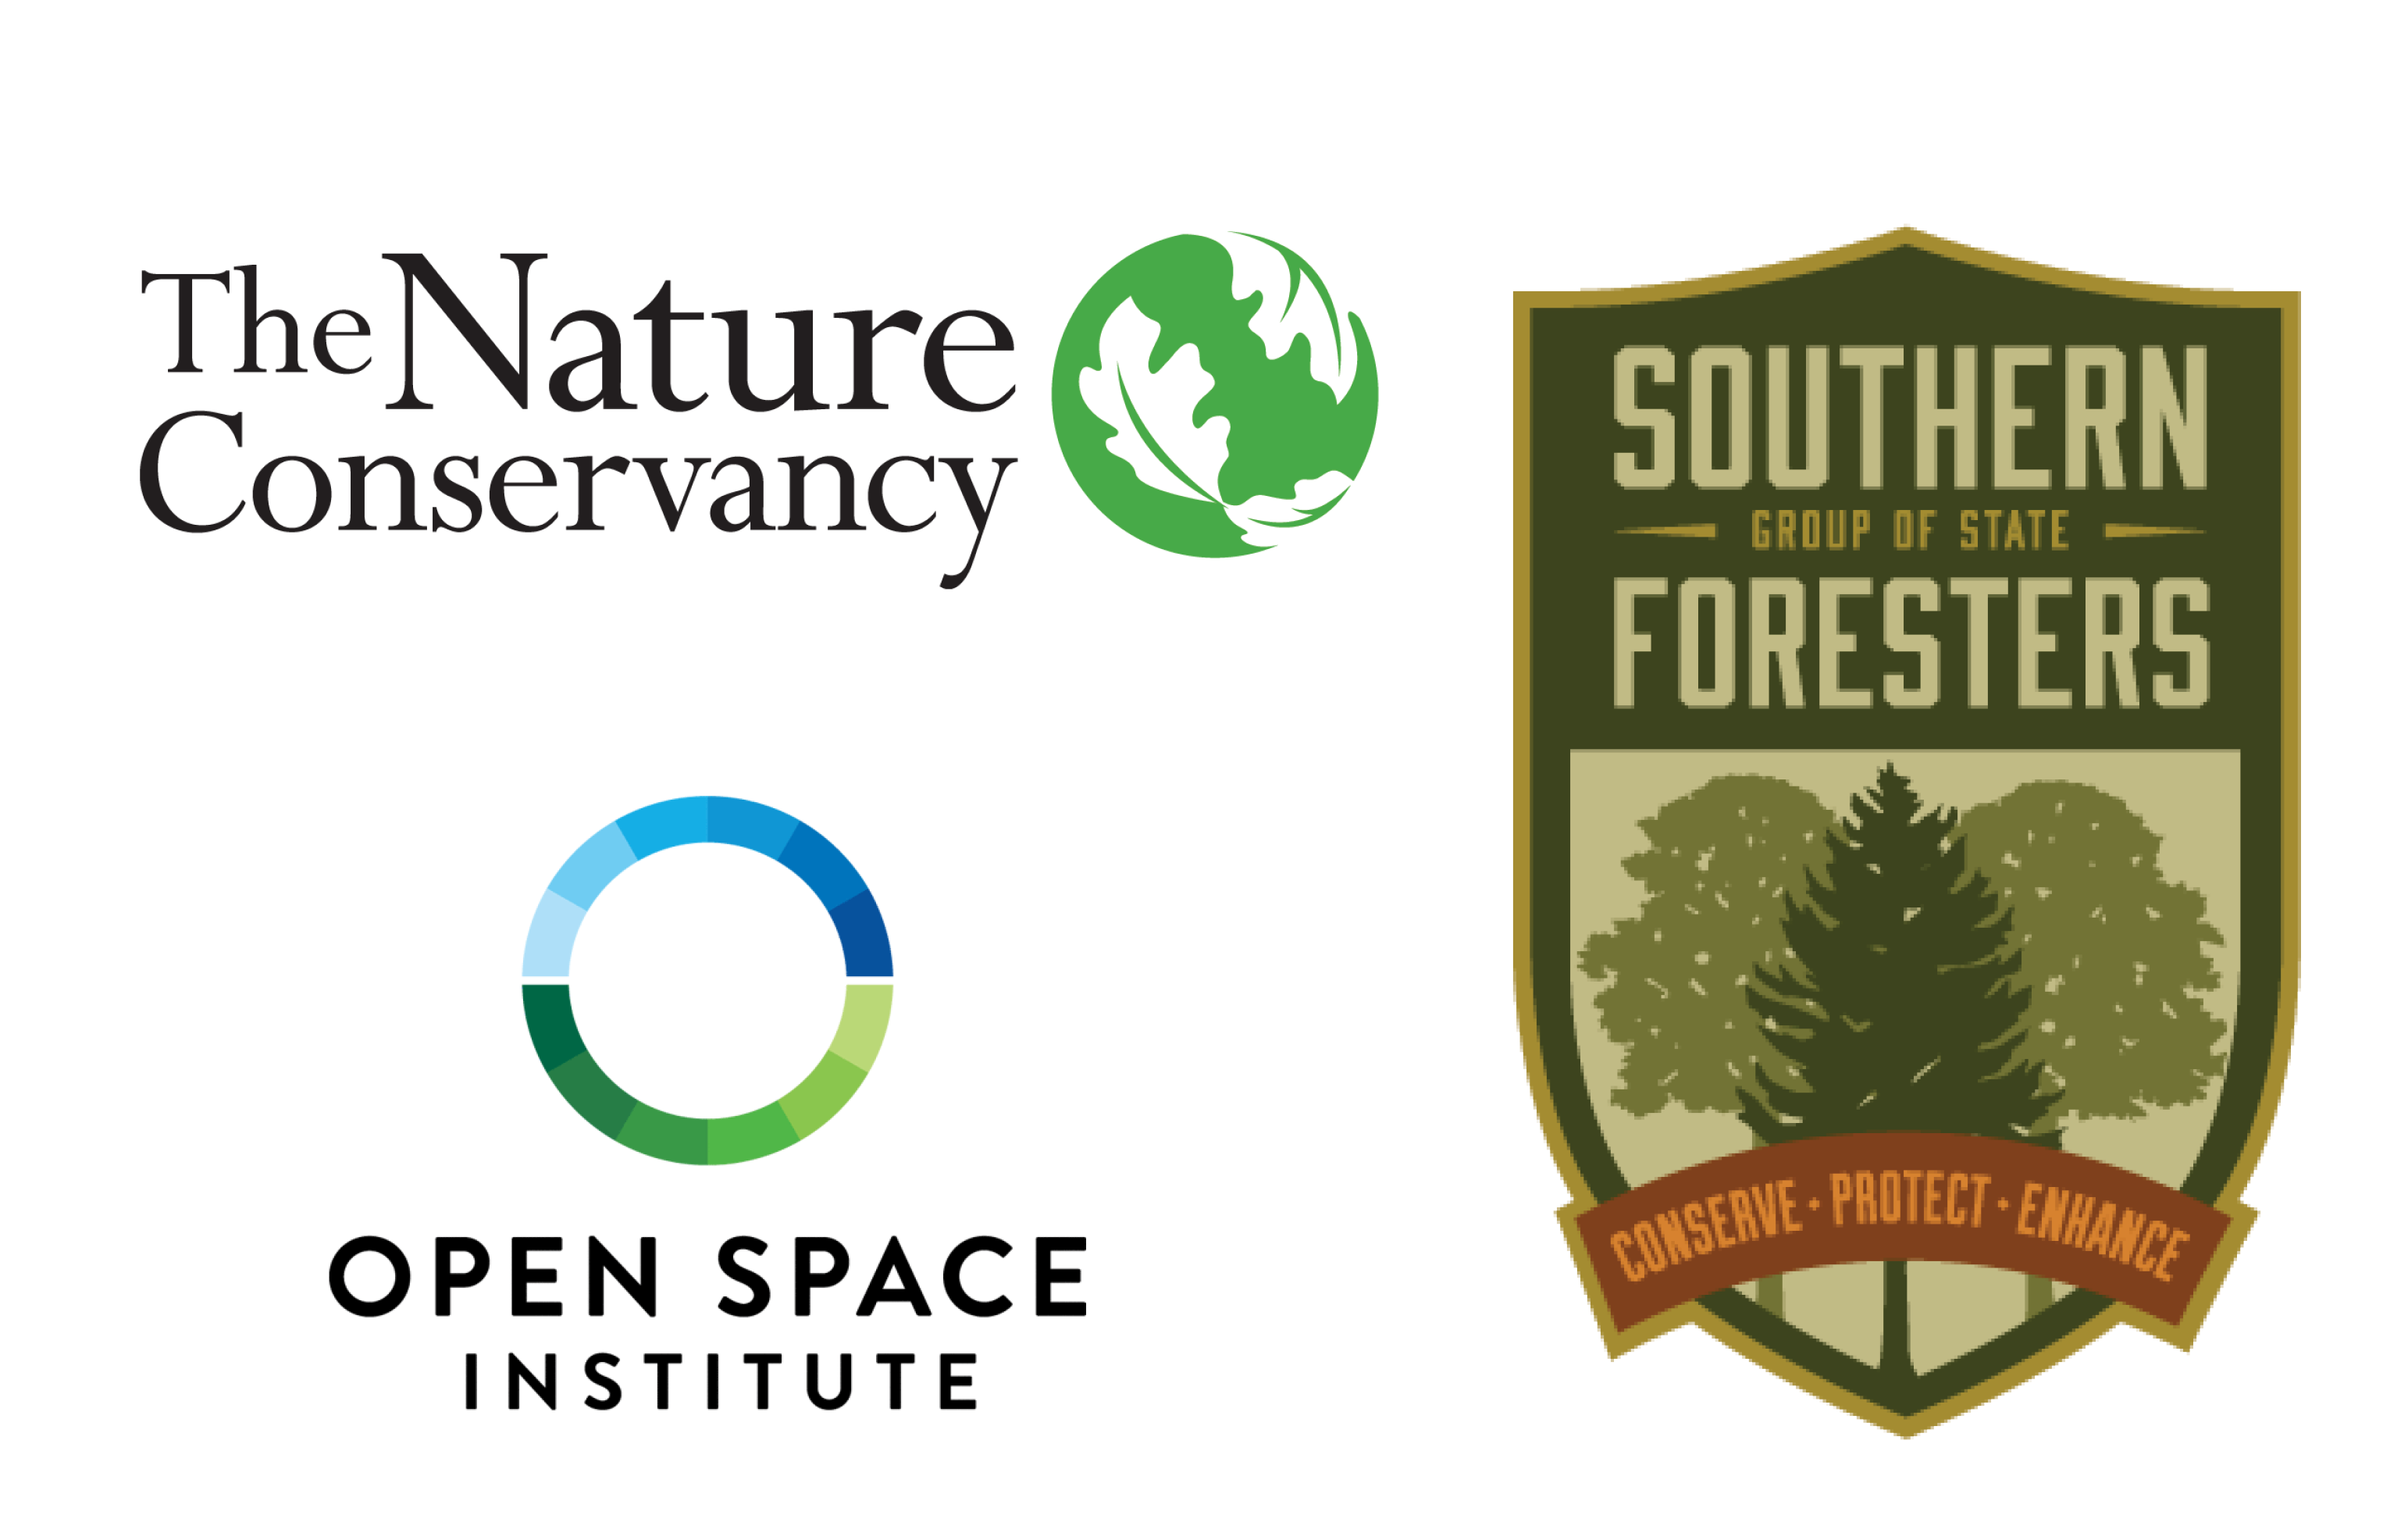 The Nature Conservancy, Open Space Institute, and Southern Group of State Foresters logos.